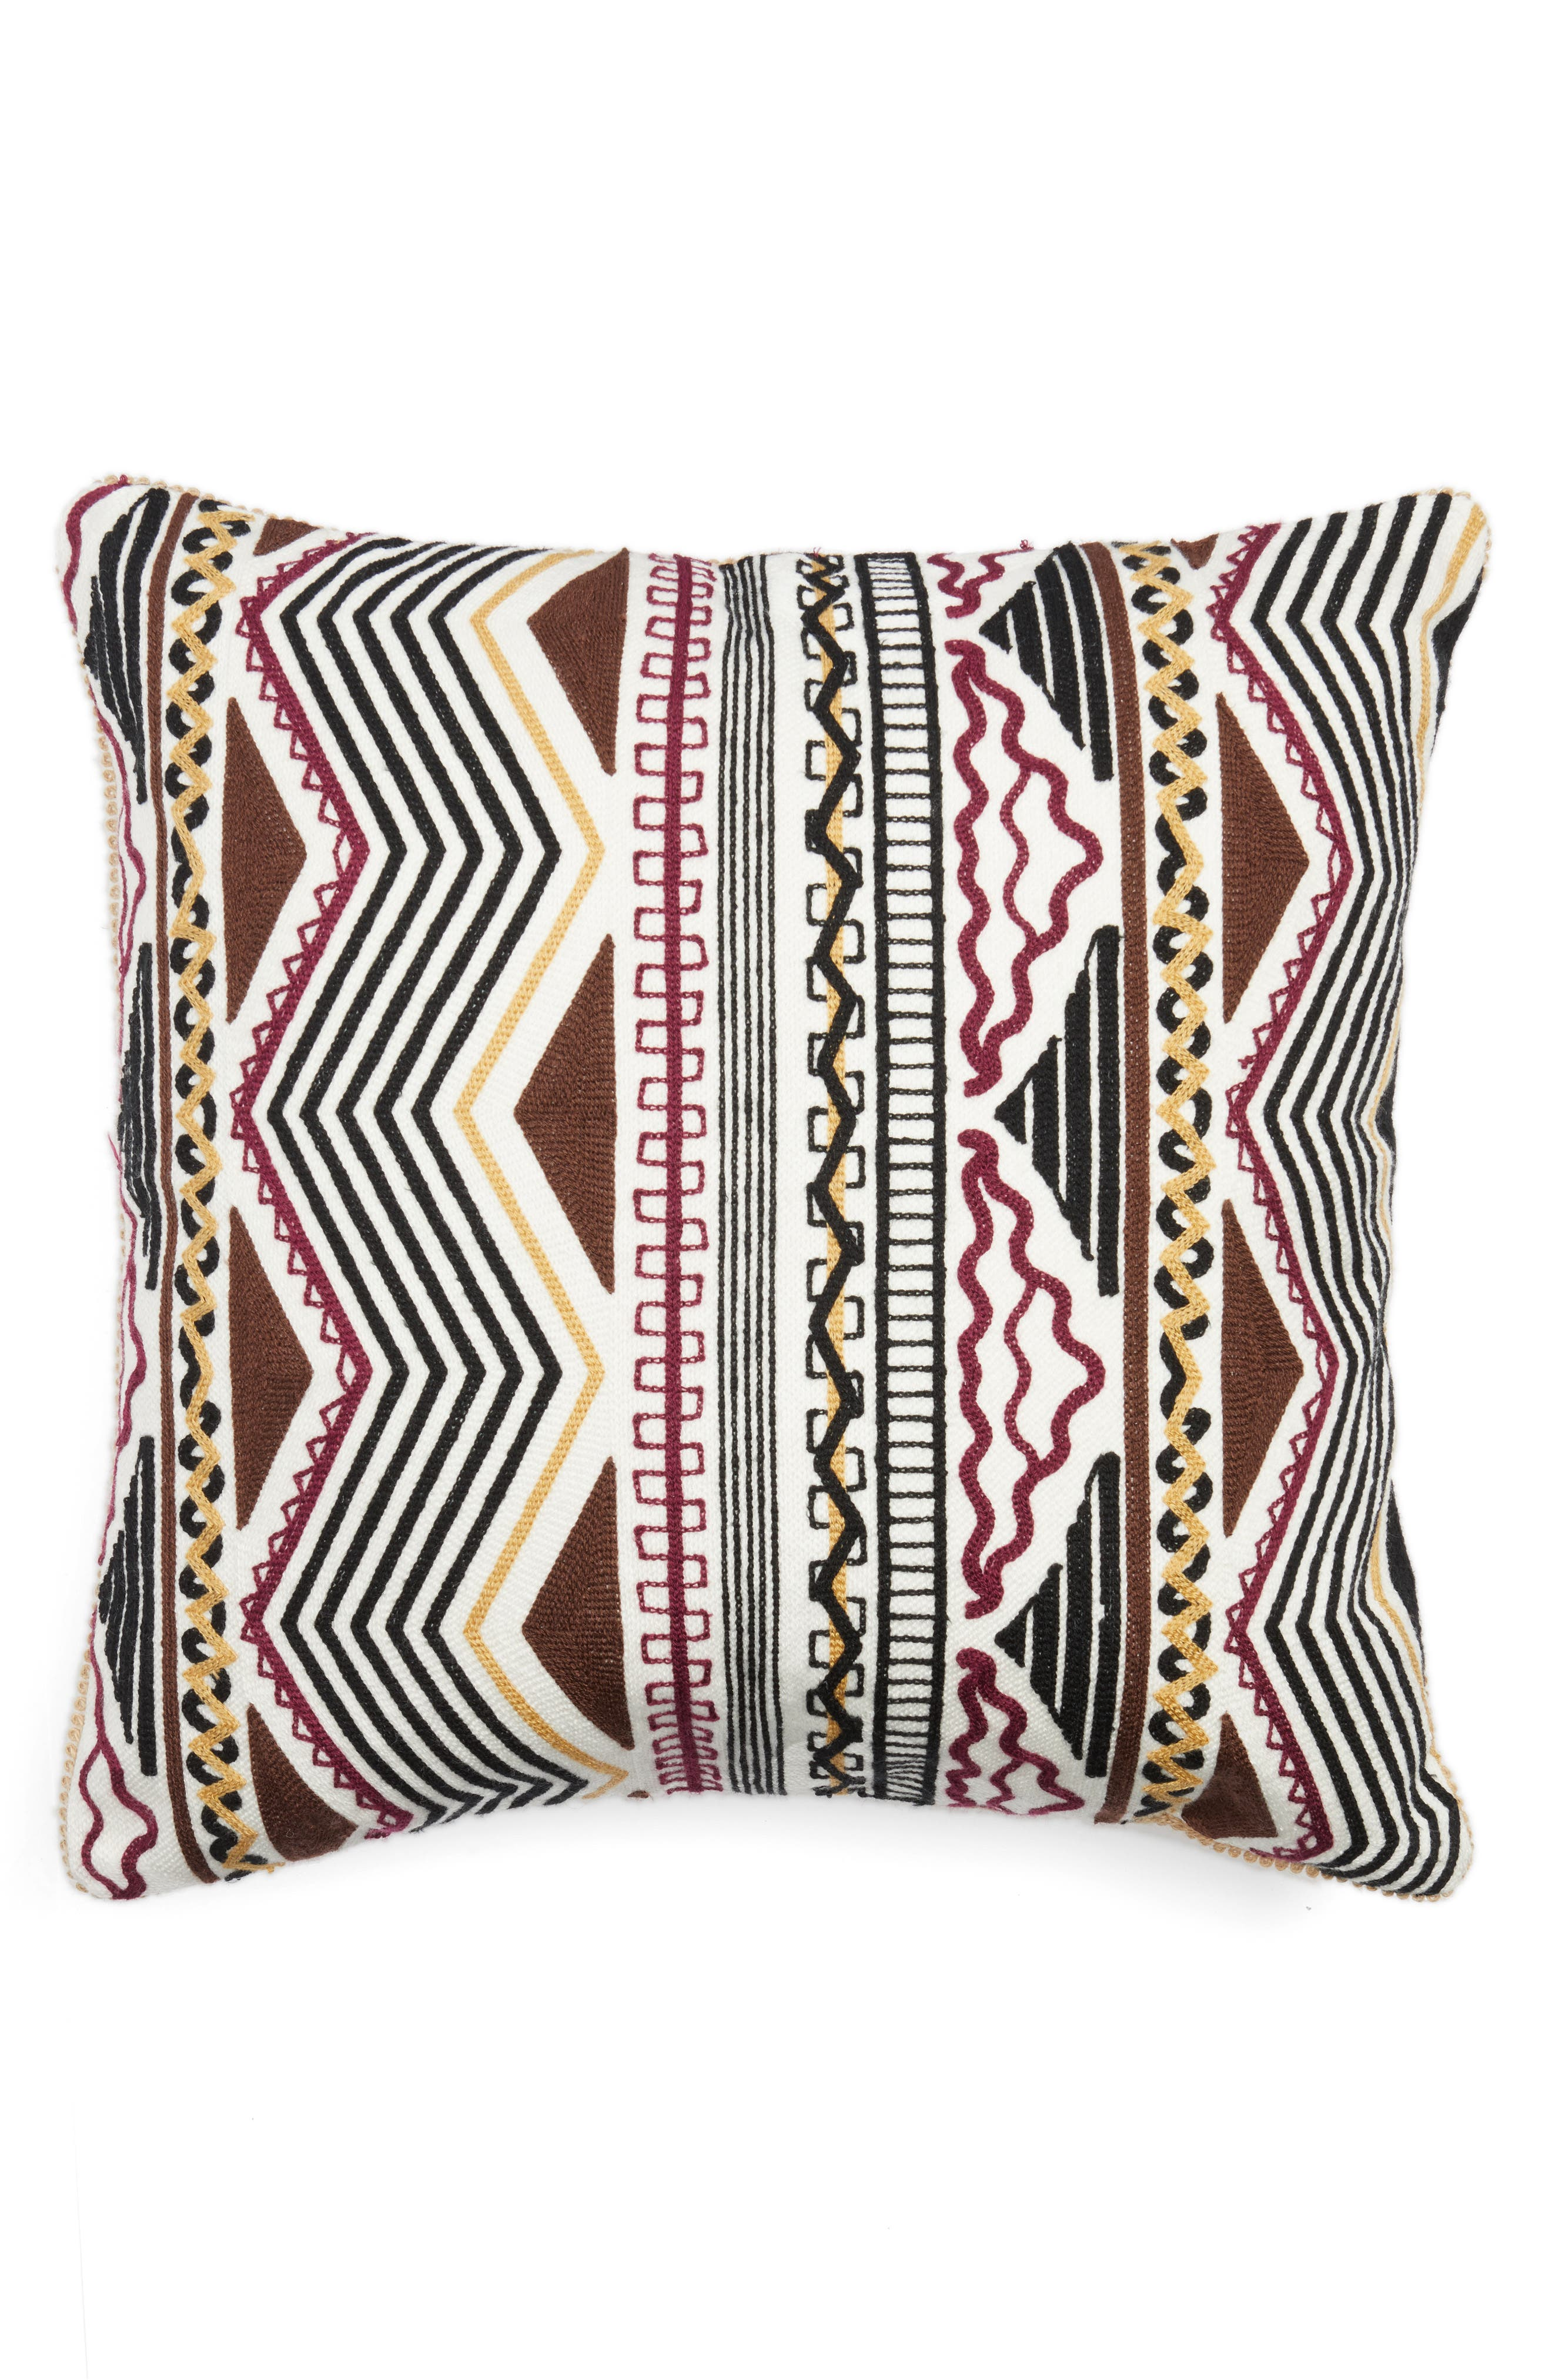 Zander Embroidered Pillow,                         Main,                         color, 500